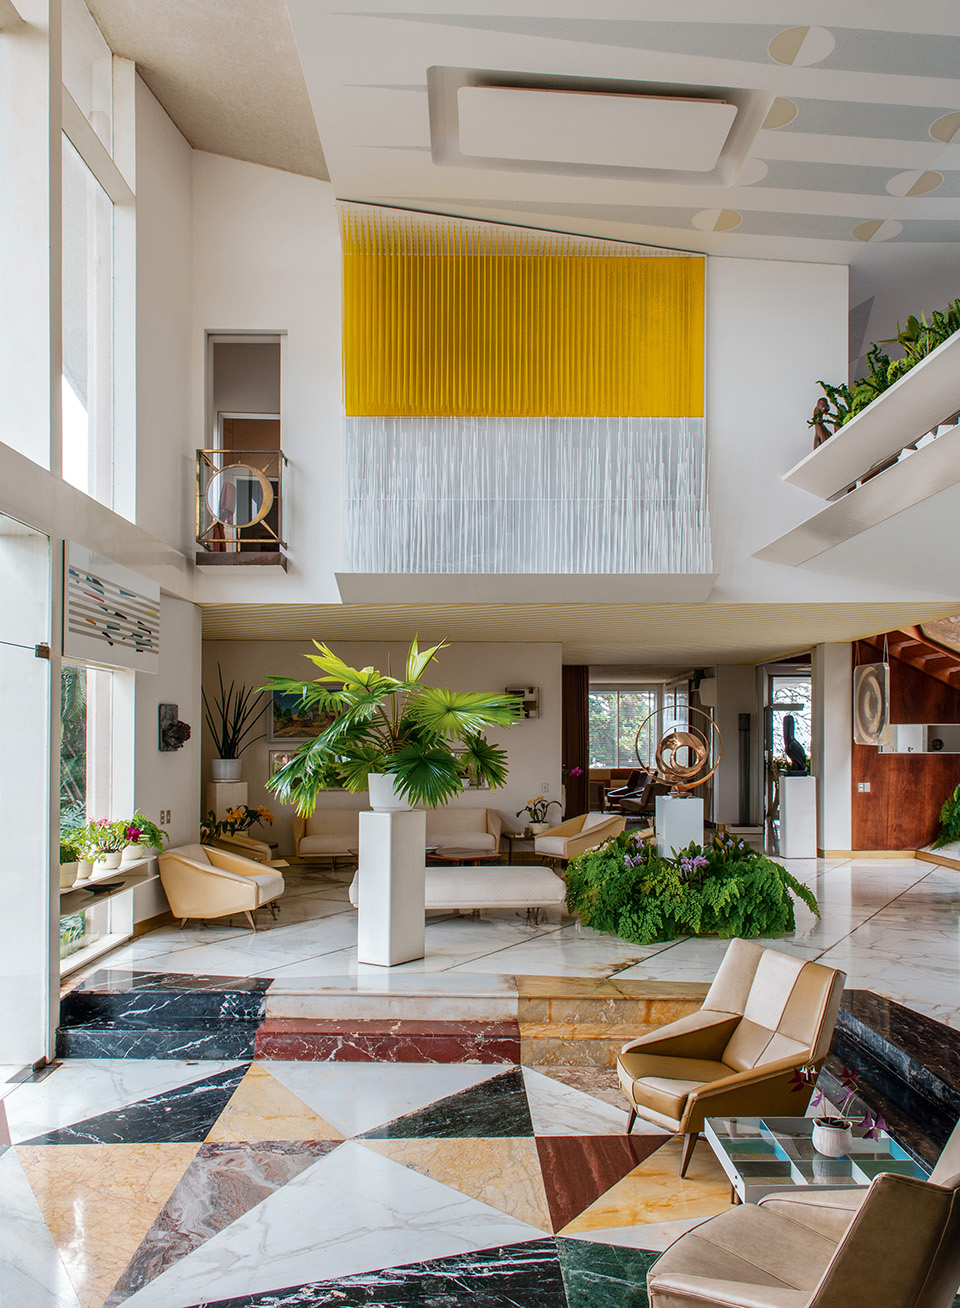 The reception area of Villa Planchart, as seen in the book Gio Ponti, offered by Taschen